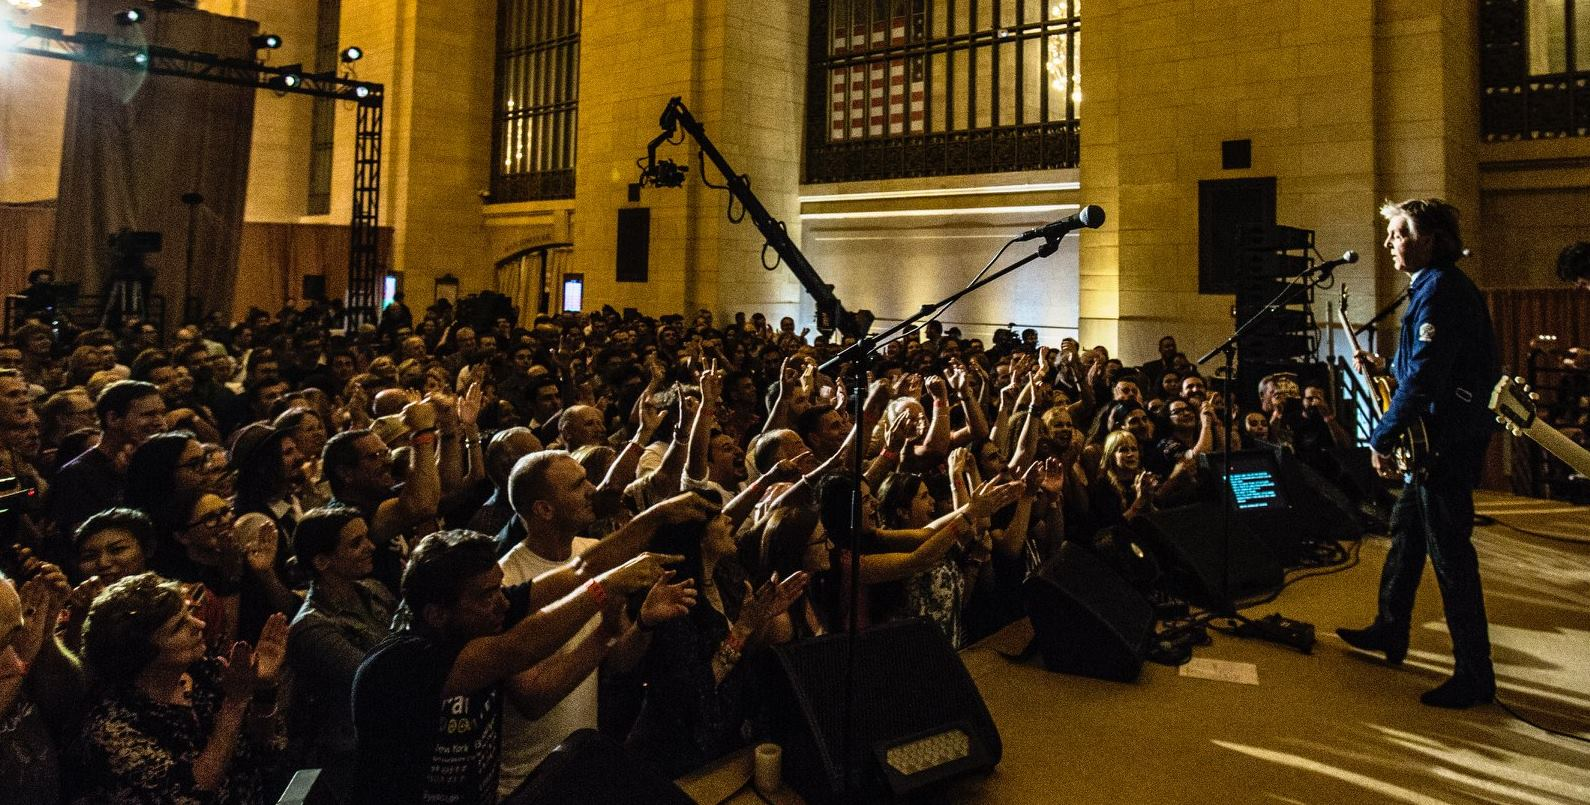 VIDEO: Paul McCartney nastupio u Grand Central Stationu u New Yorku